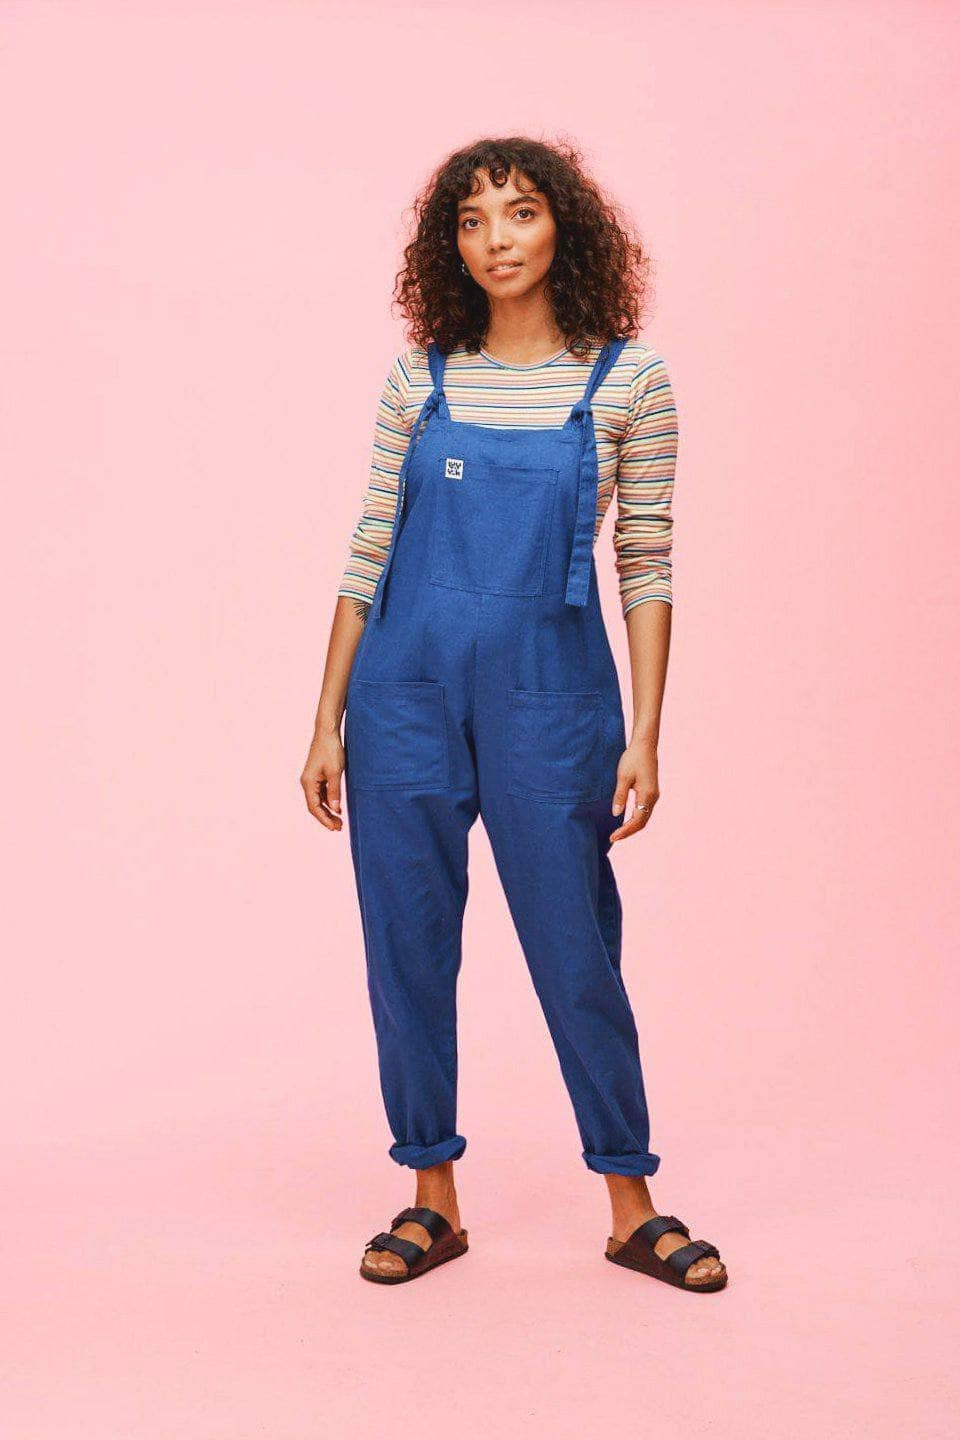 Lucy & Yak Cotton Dungarees 'Umi' Organic Cotton Dungarees in Classic Blue